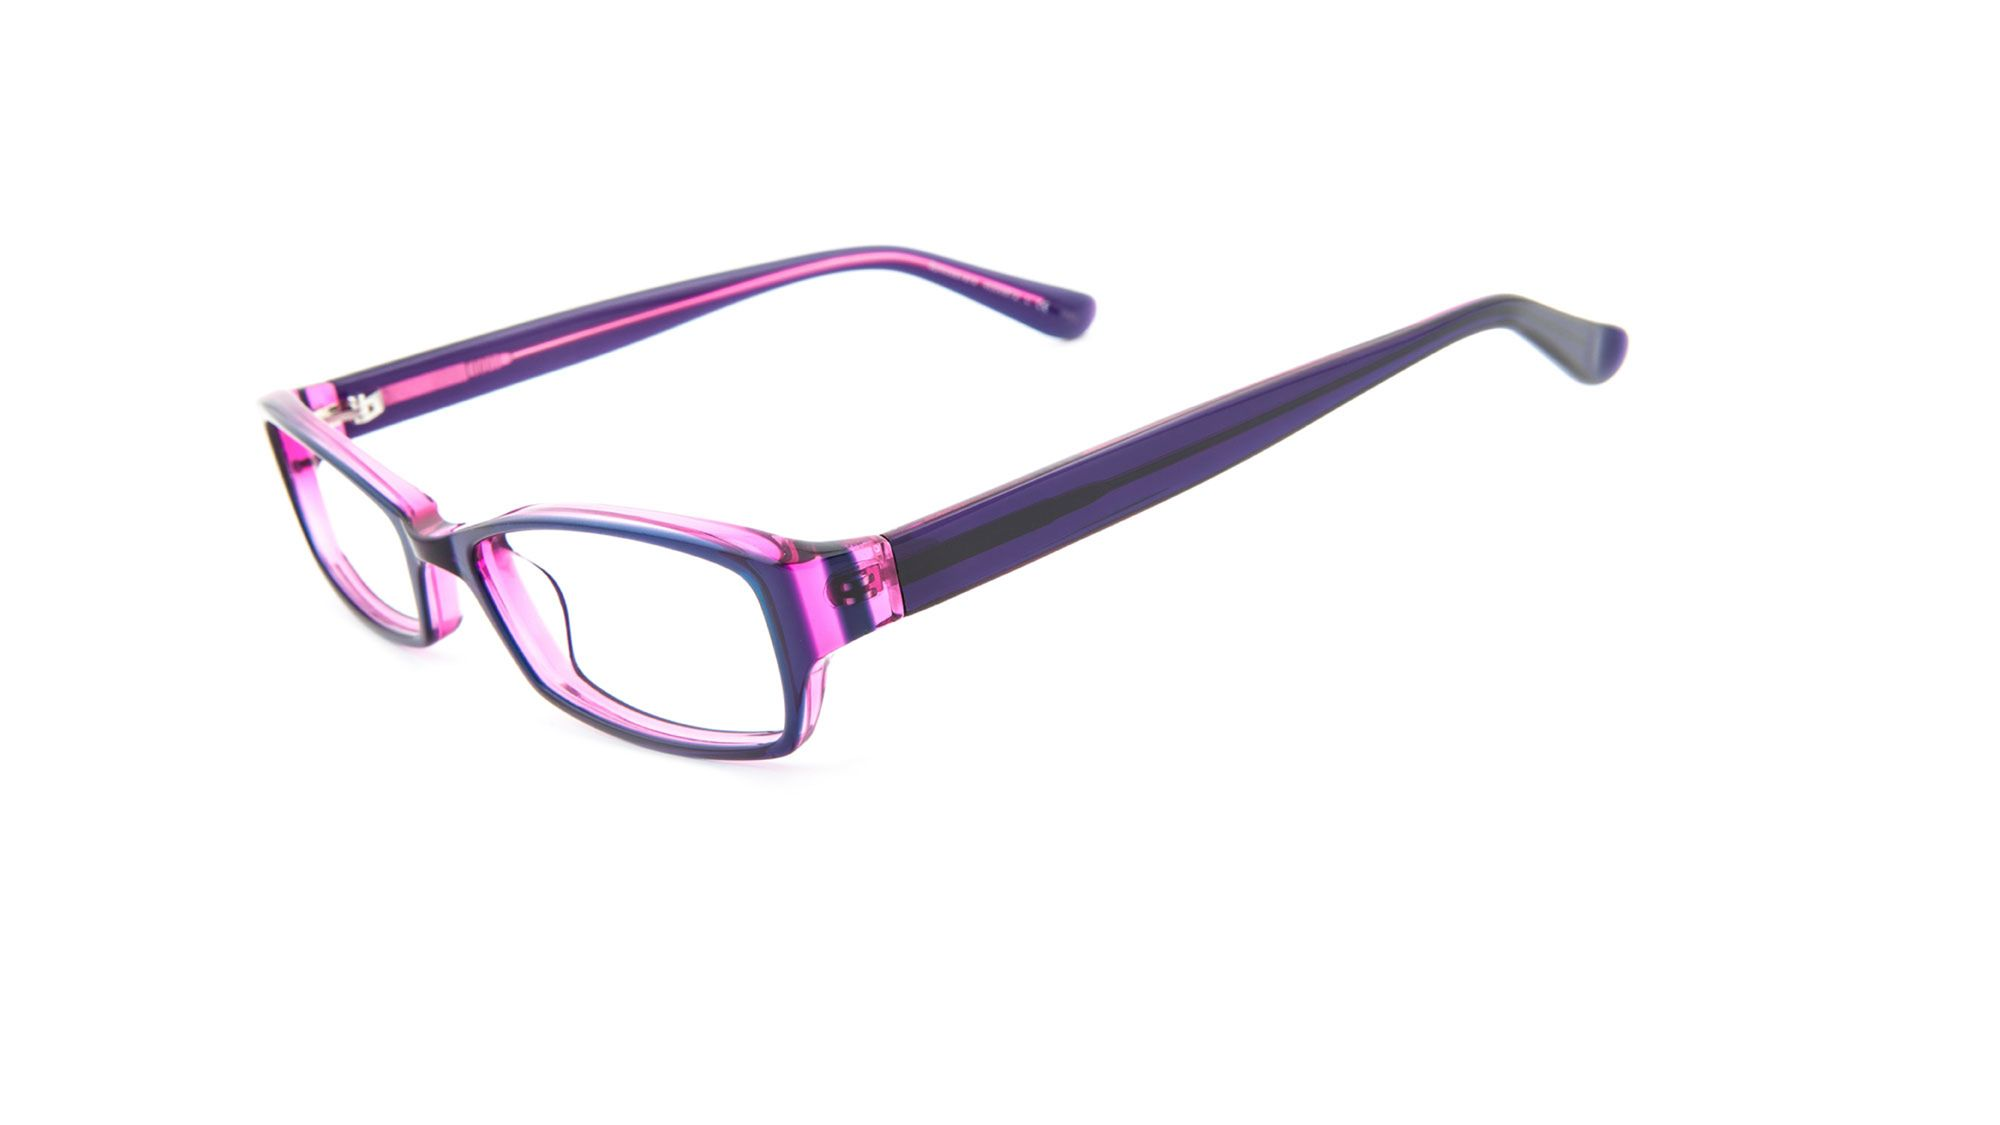 bf2580ae224 RUTH Glasses by Specsavers